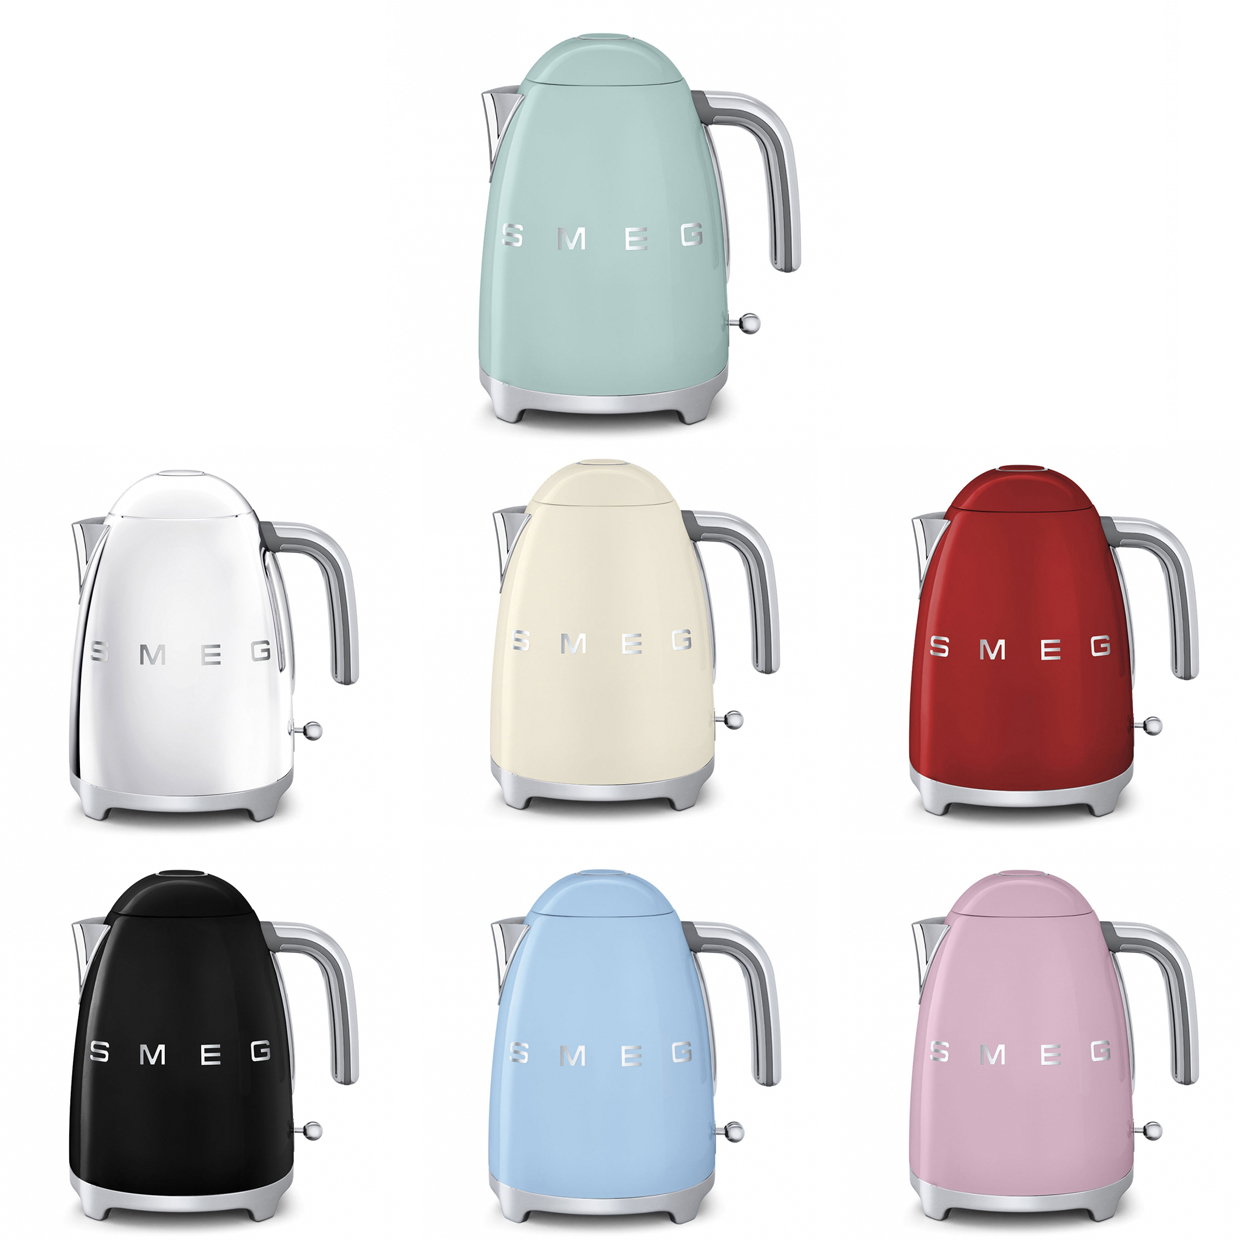 Smeg kettle in different colours